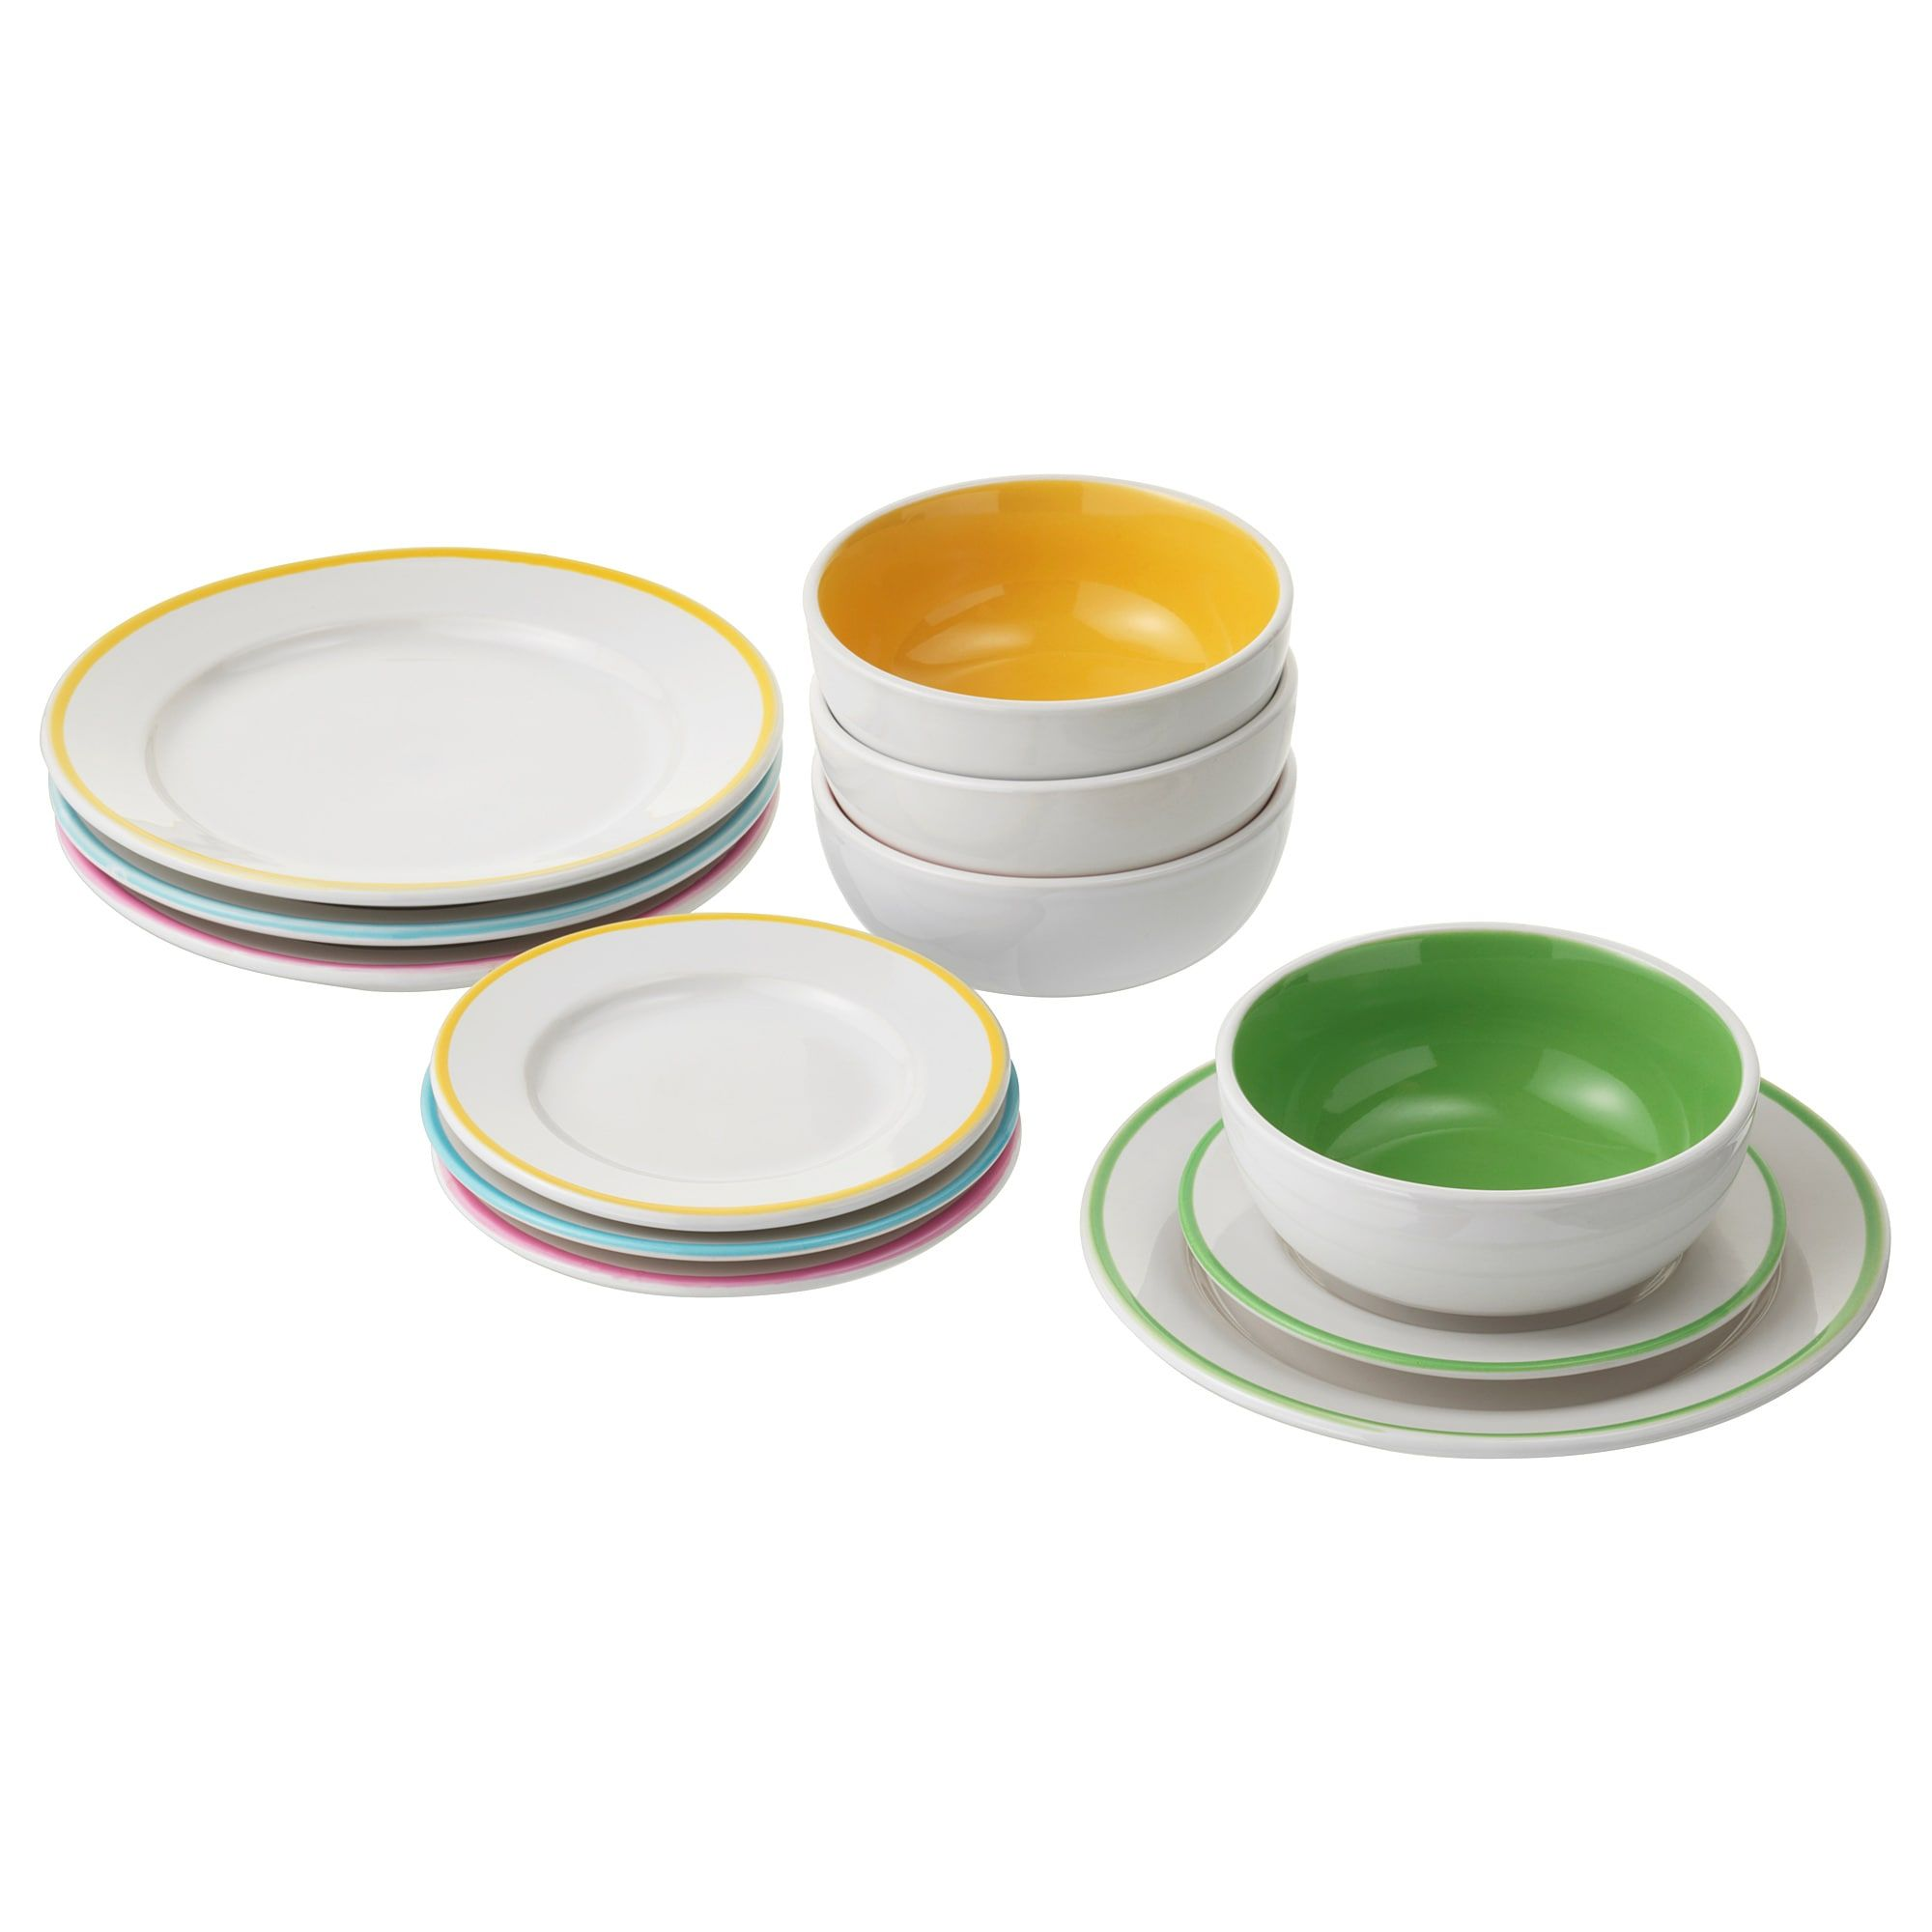 DUKTIG Plate/bowl Ikea, Toy kitchen set, Toy kitchen